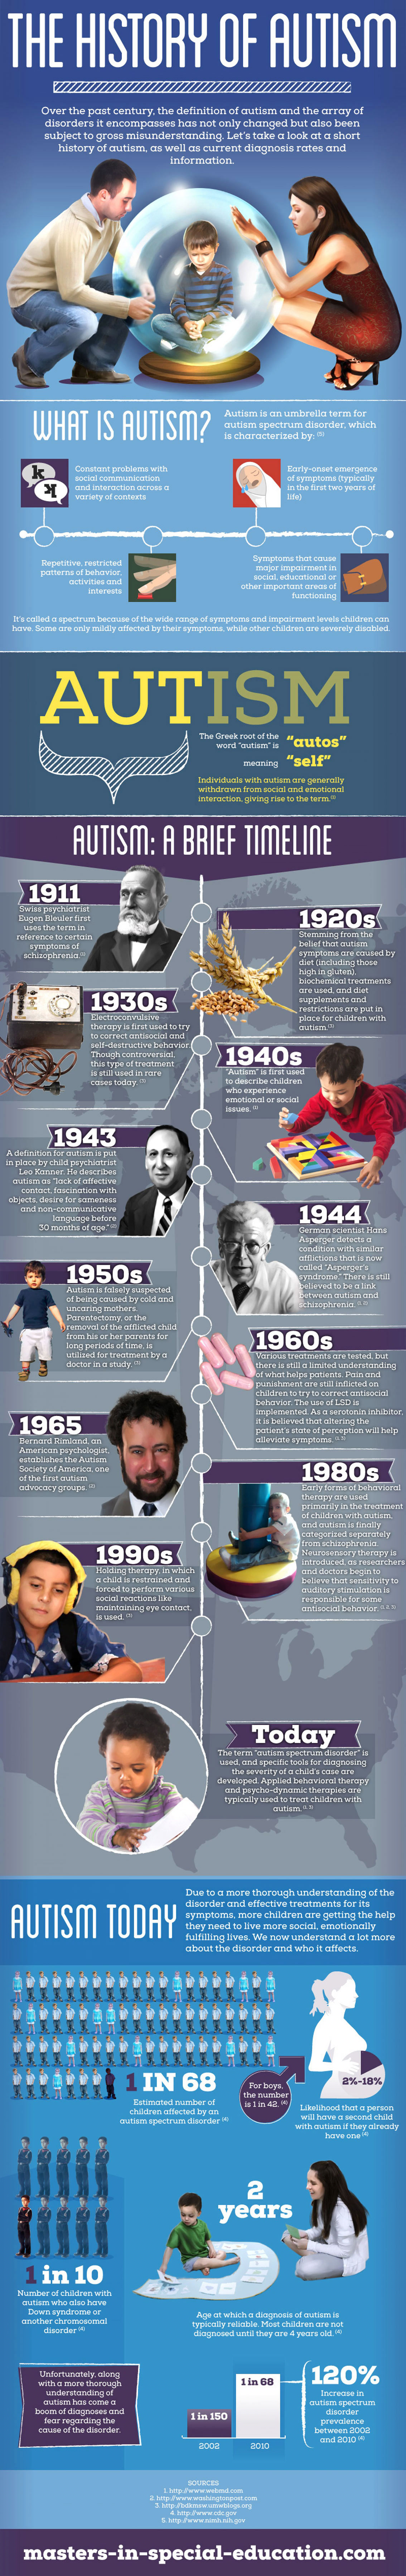 History of Autism - Mental Disorder Infographic